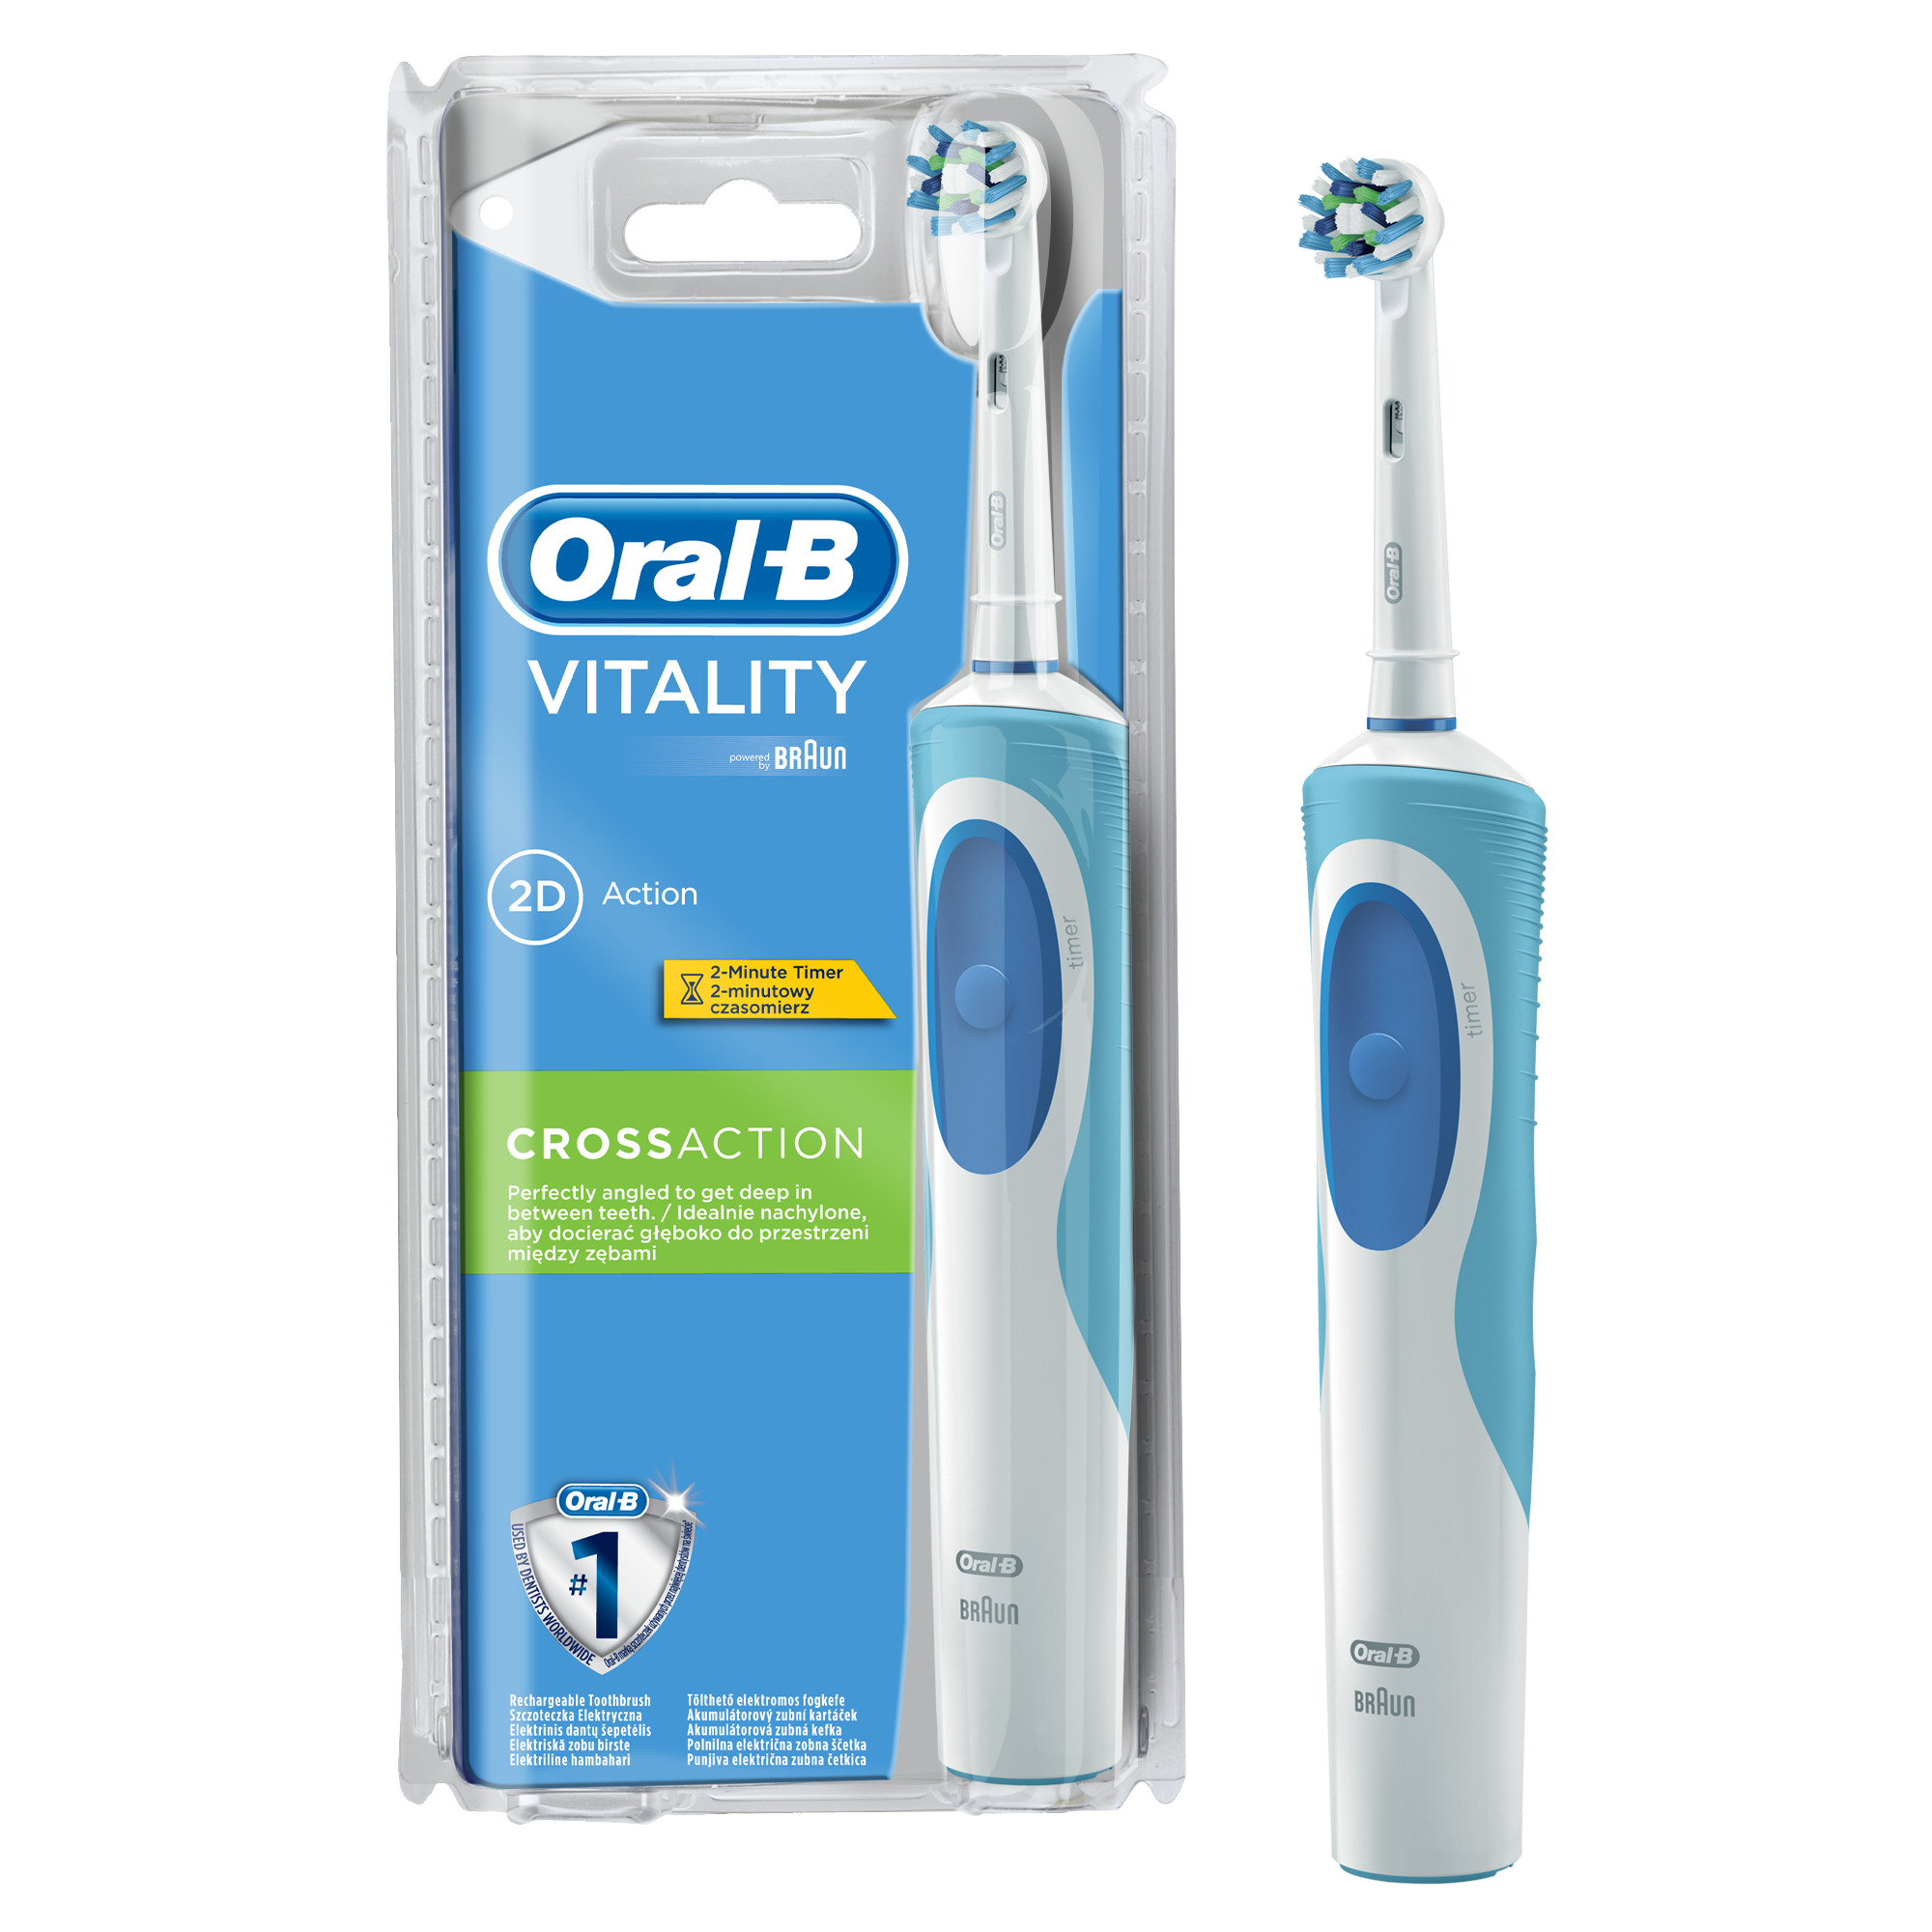 Oral-B Vitality Cross Action Bundle Gift Pack - Electric Toothbrush and Replacement Heads Refills (Pack of 2)